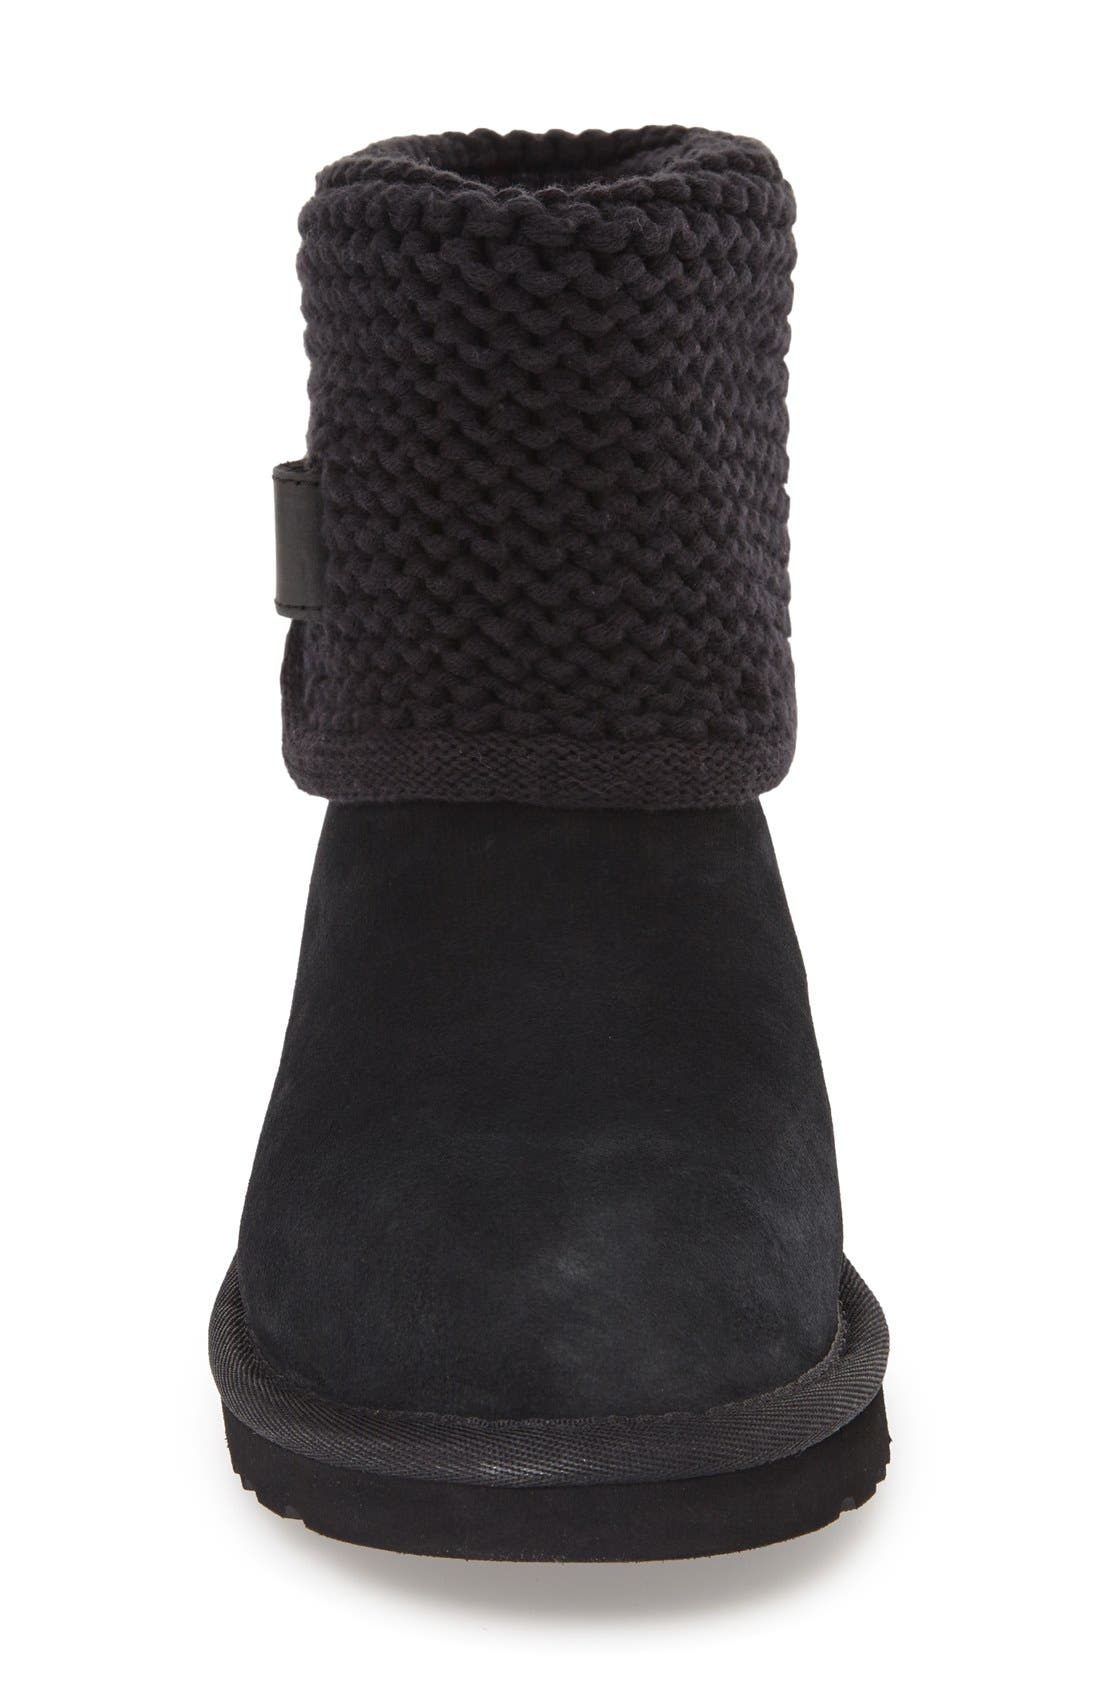 Shaina Knit Cuff Bootie,                             Alternate thumbnail 8, color,